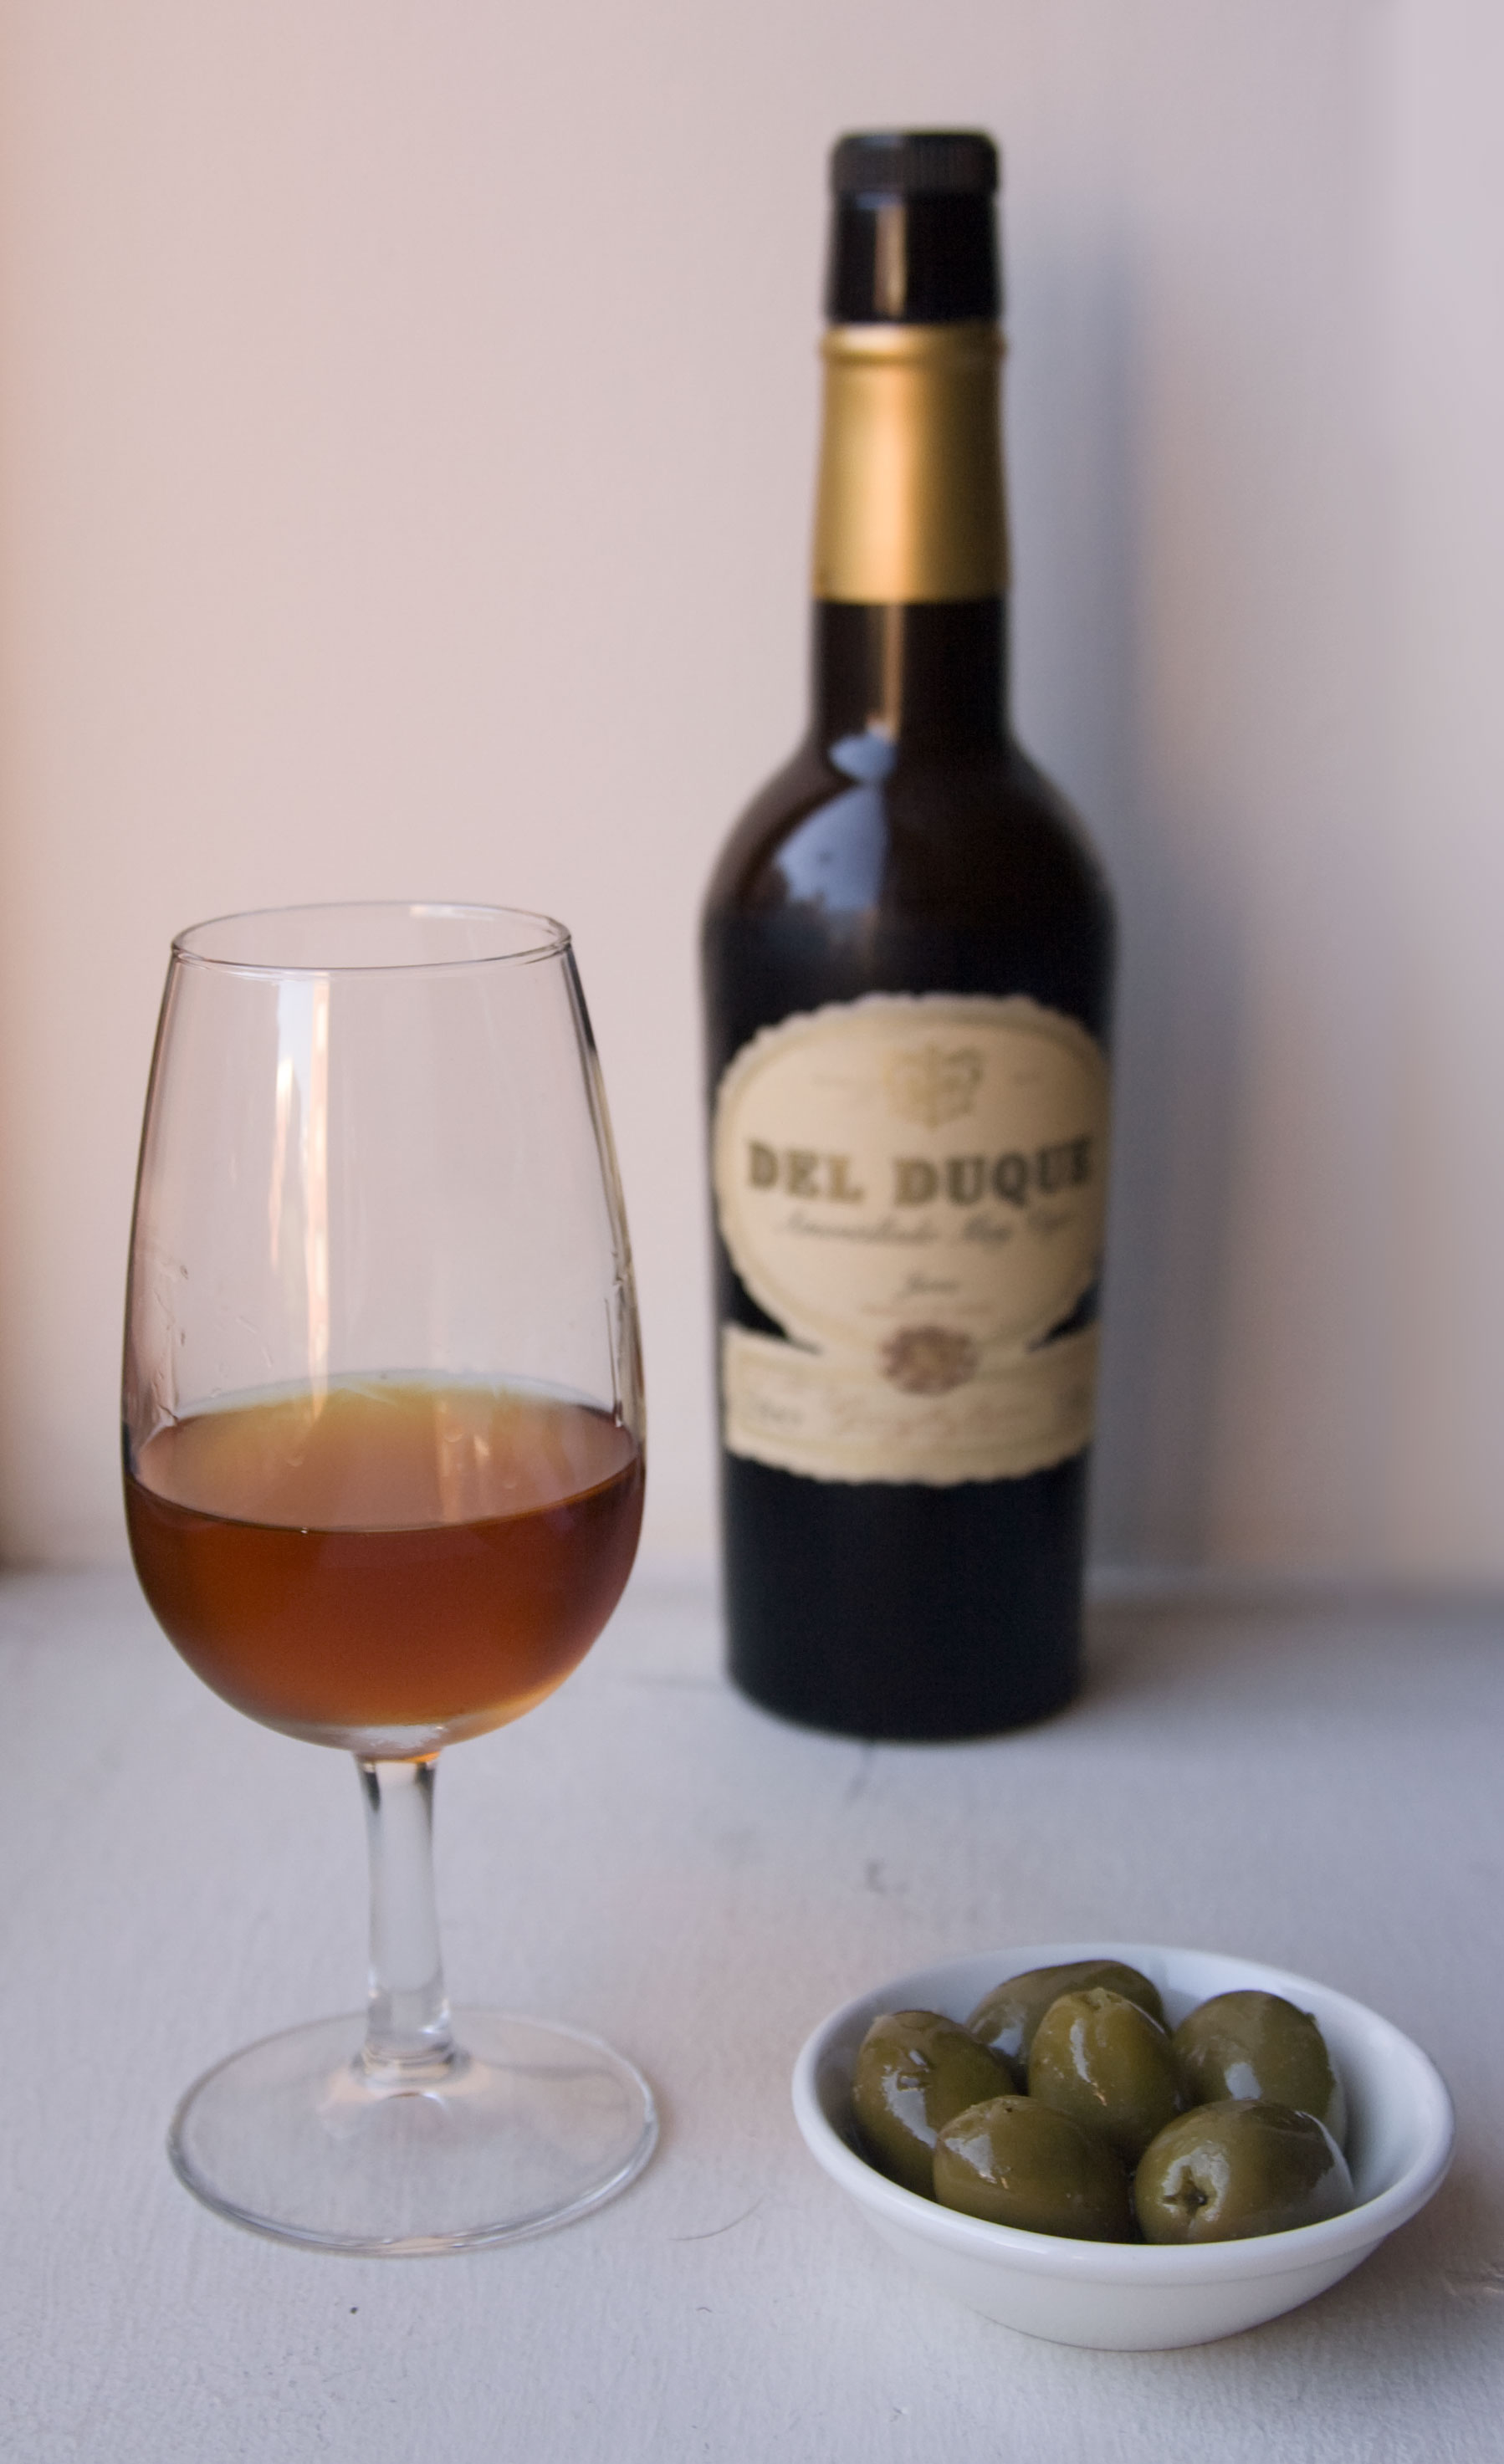 Del_Duque_Amontillado_Sherry